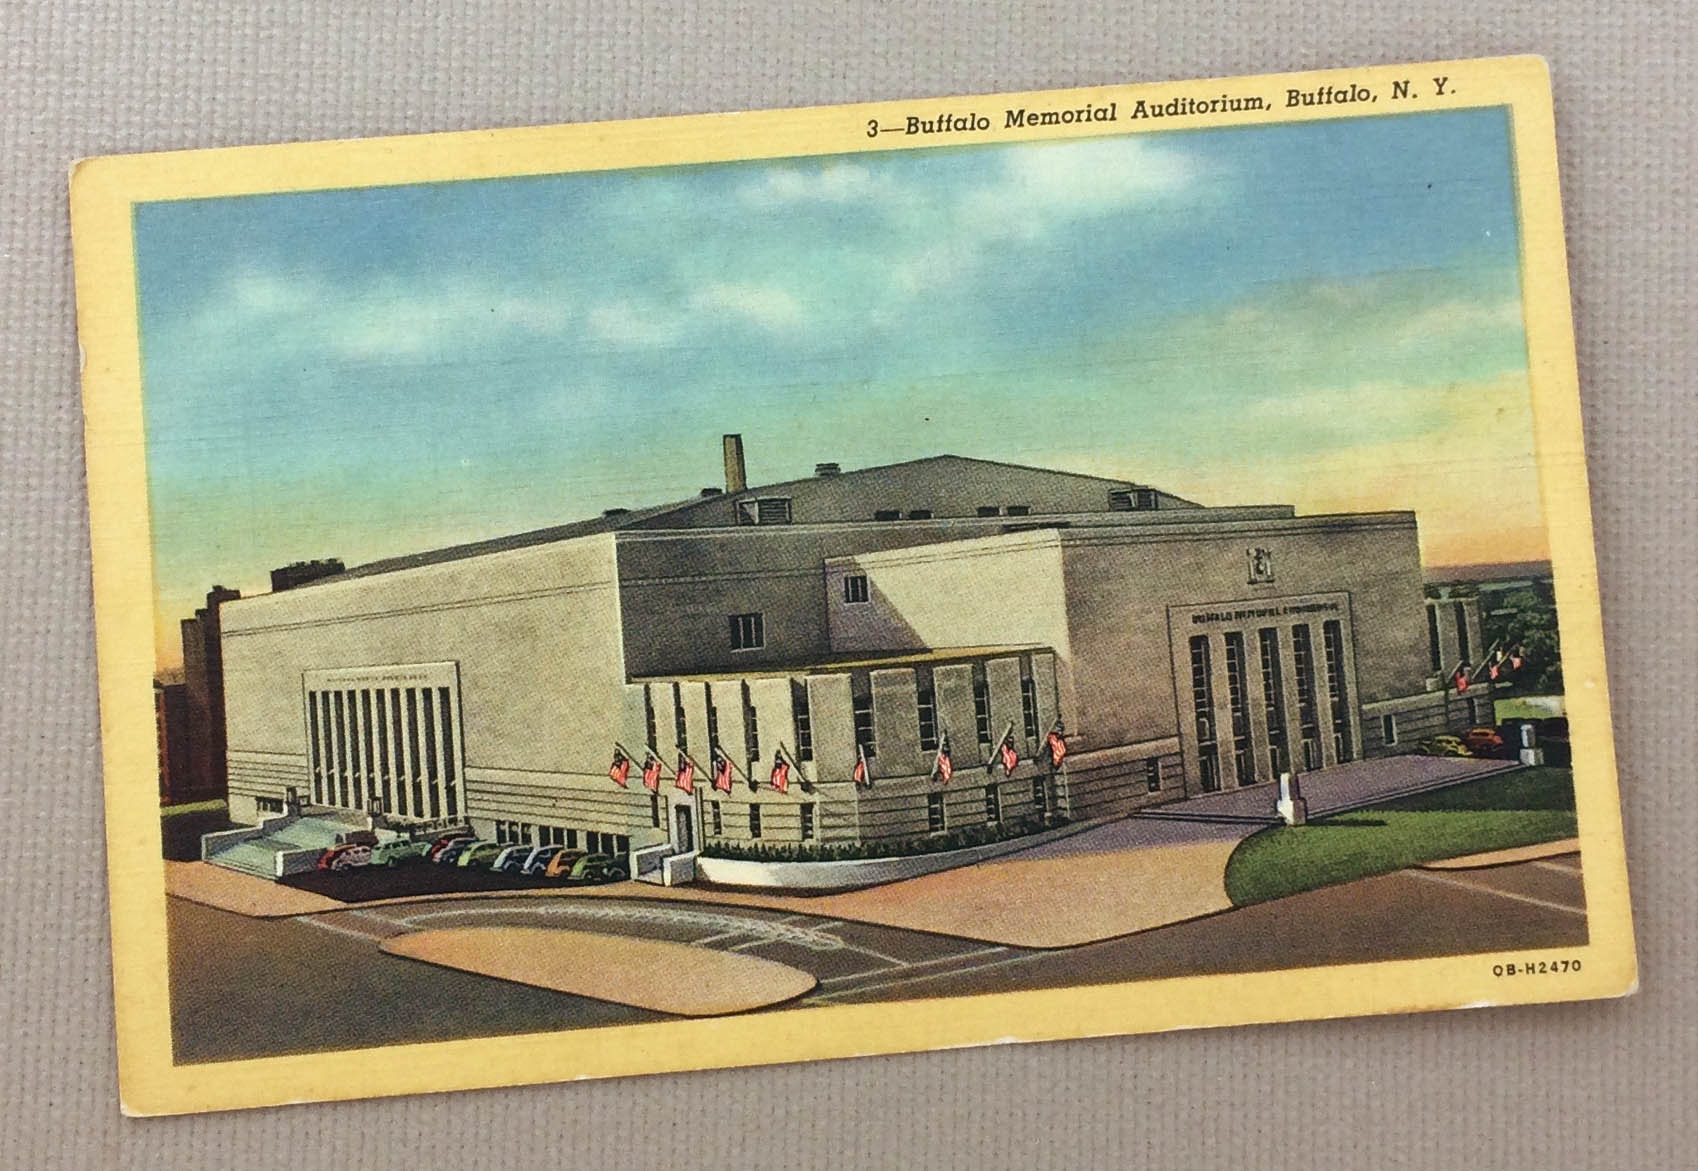 Buffalo Memorial Auditorium Postcard